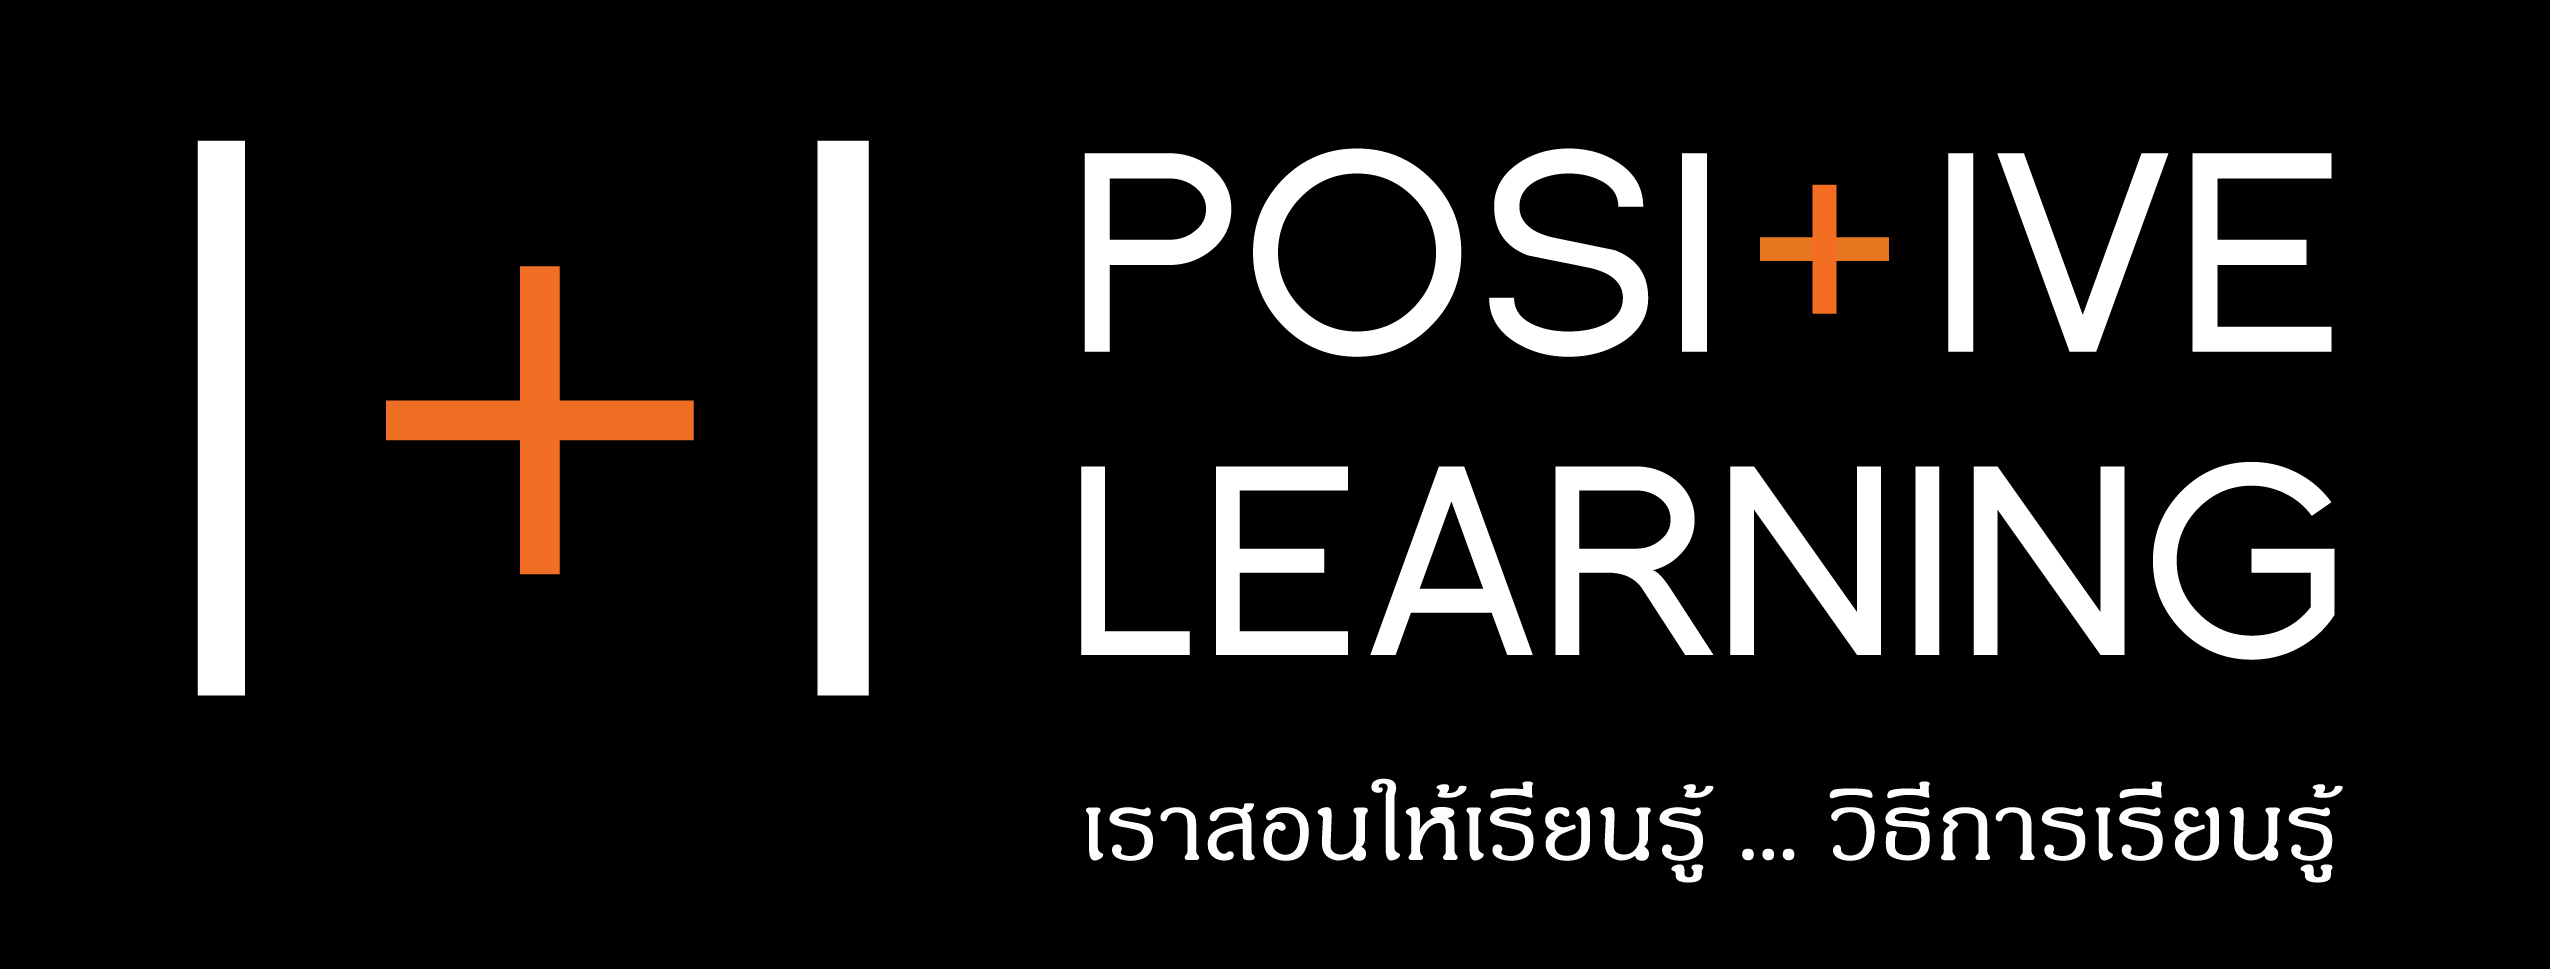 Positive Learning